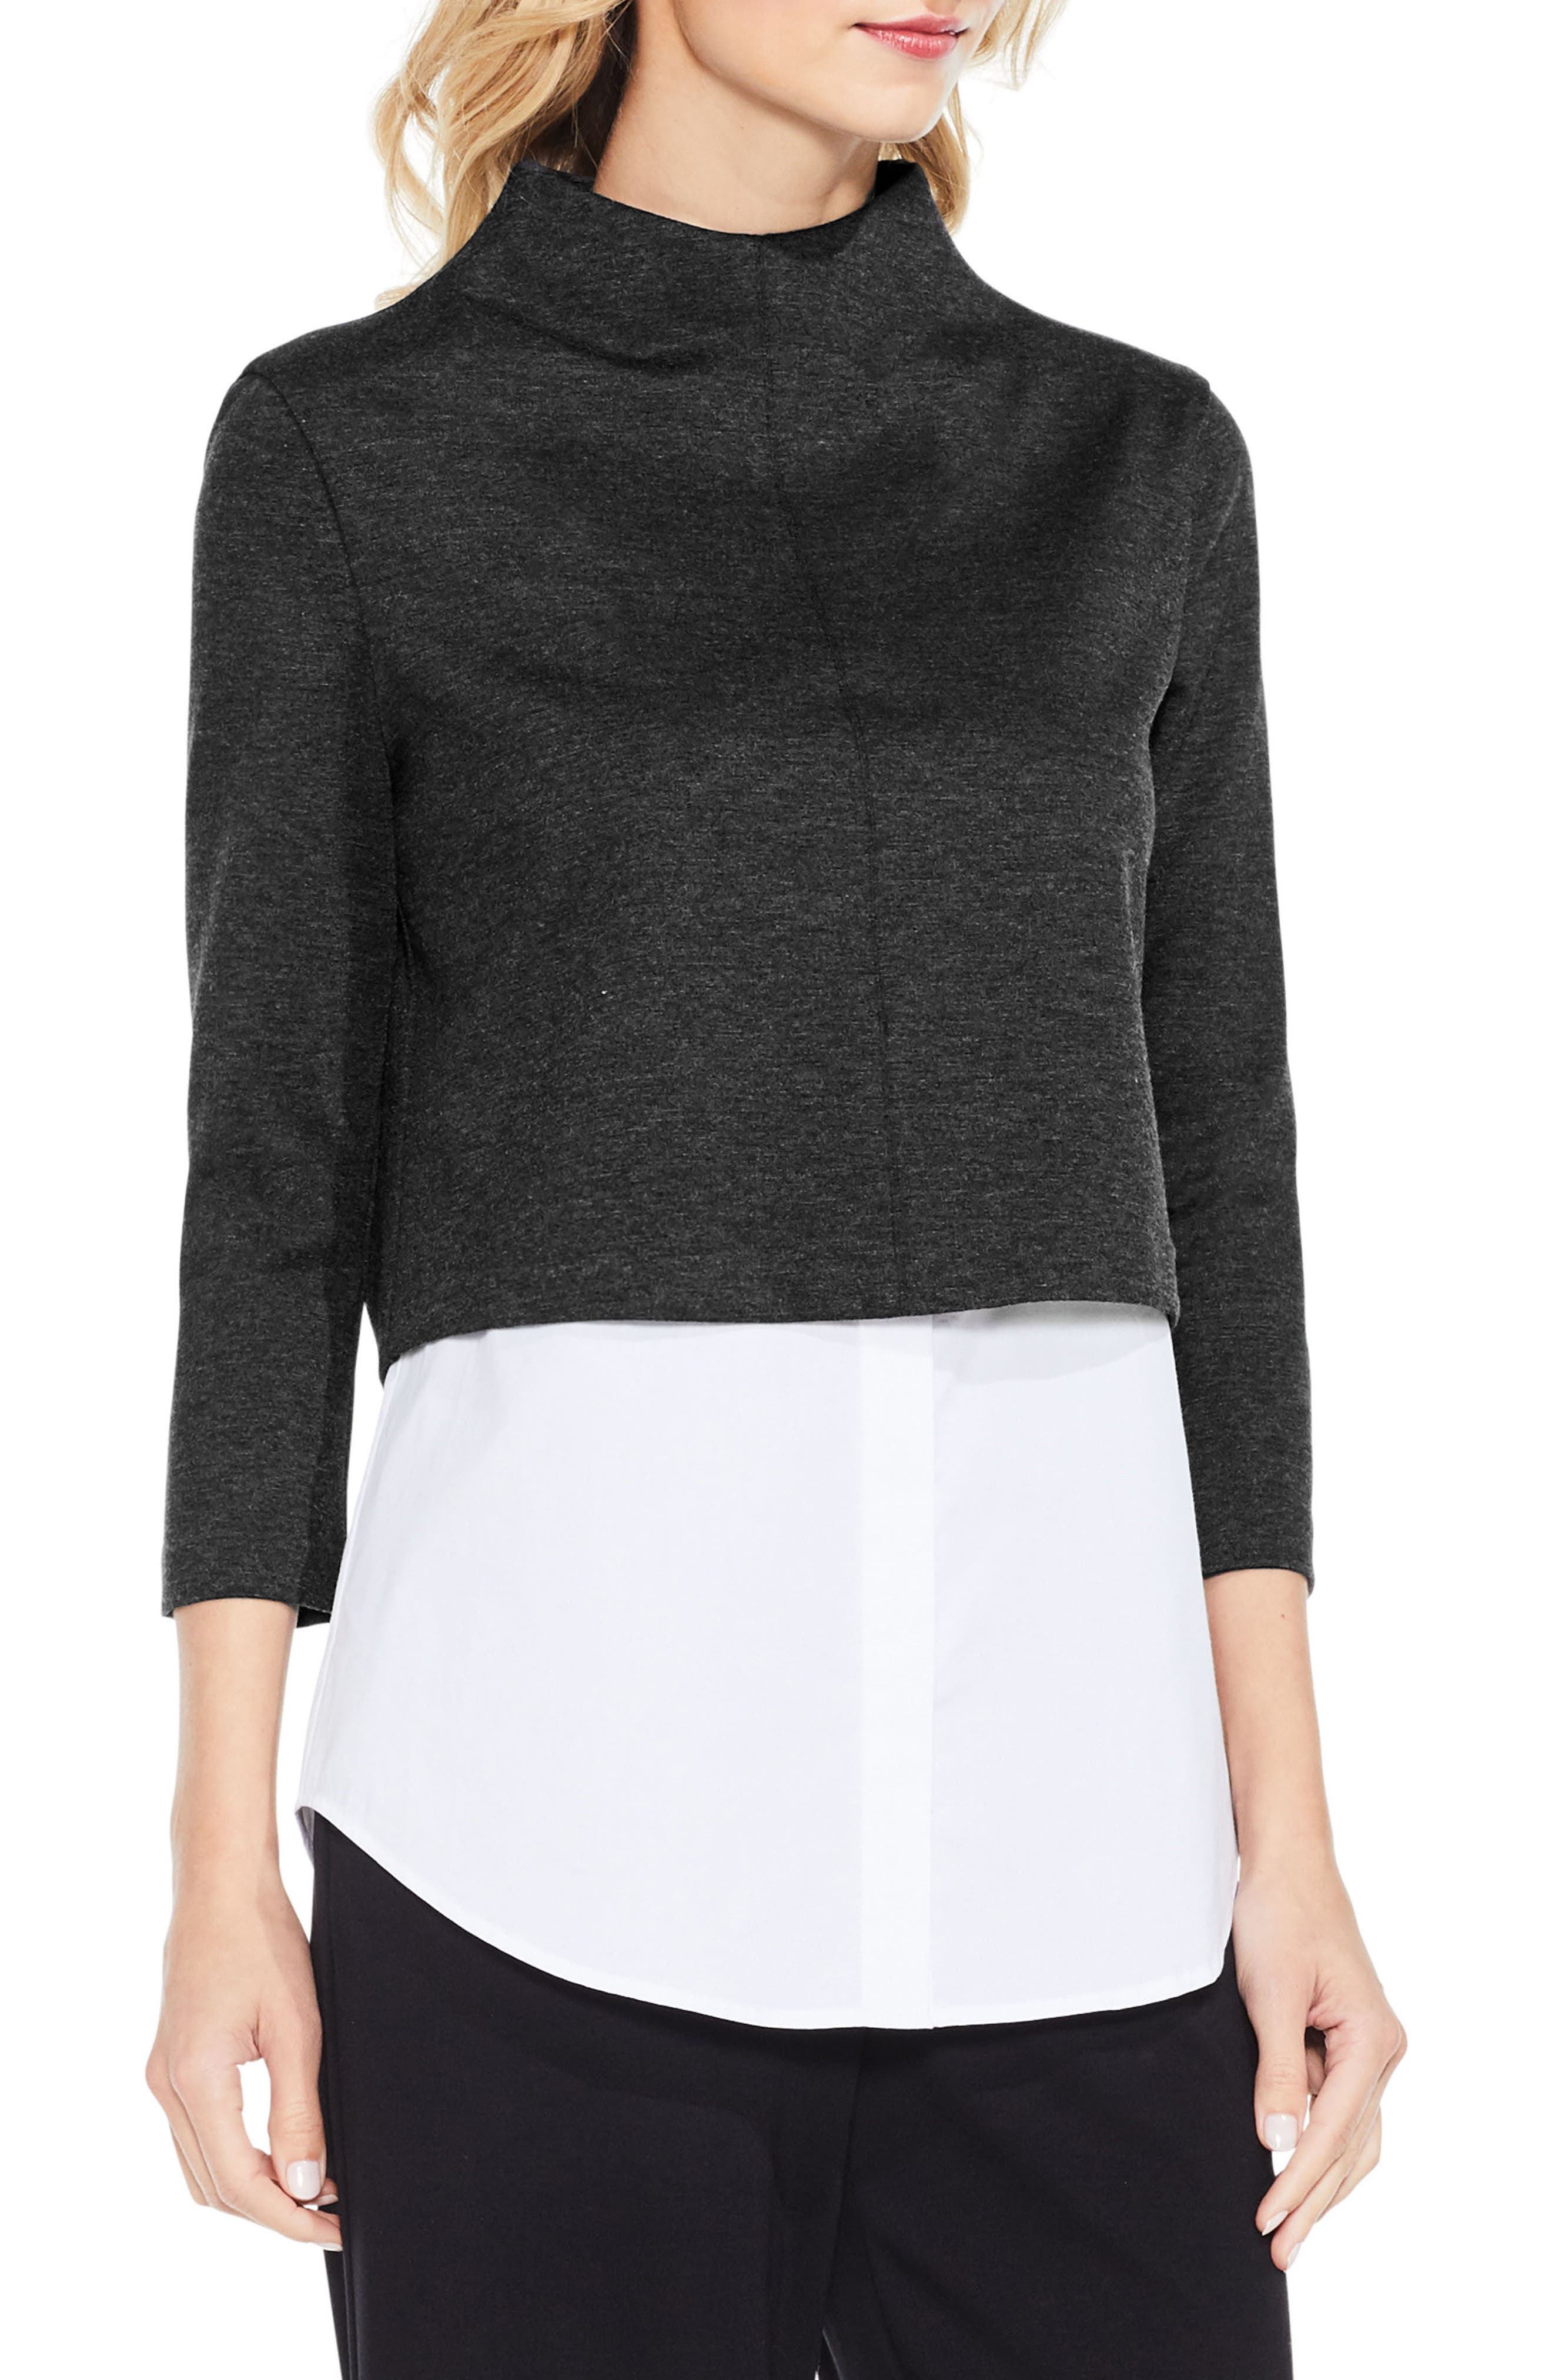 Vince Camuto Layered Look Ponte Knit Top